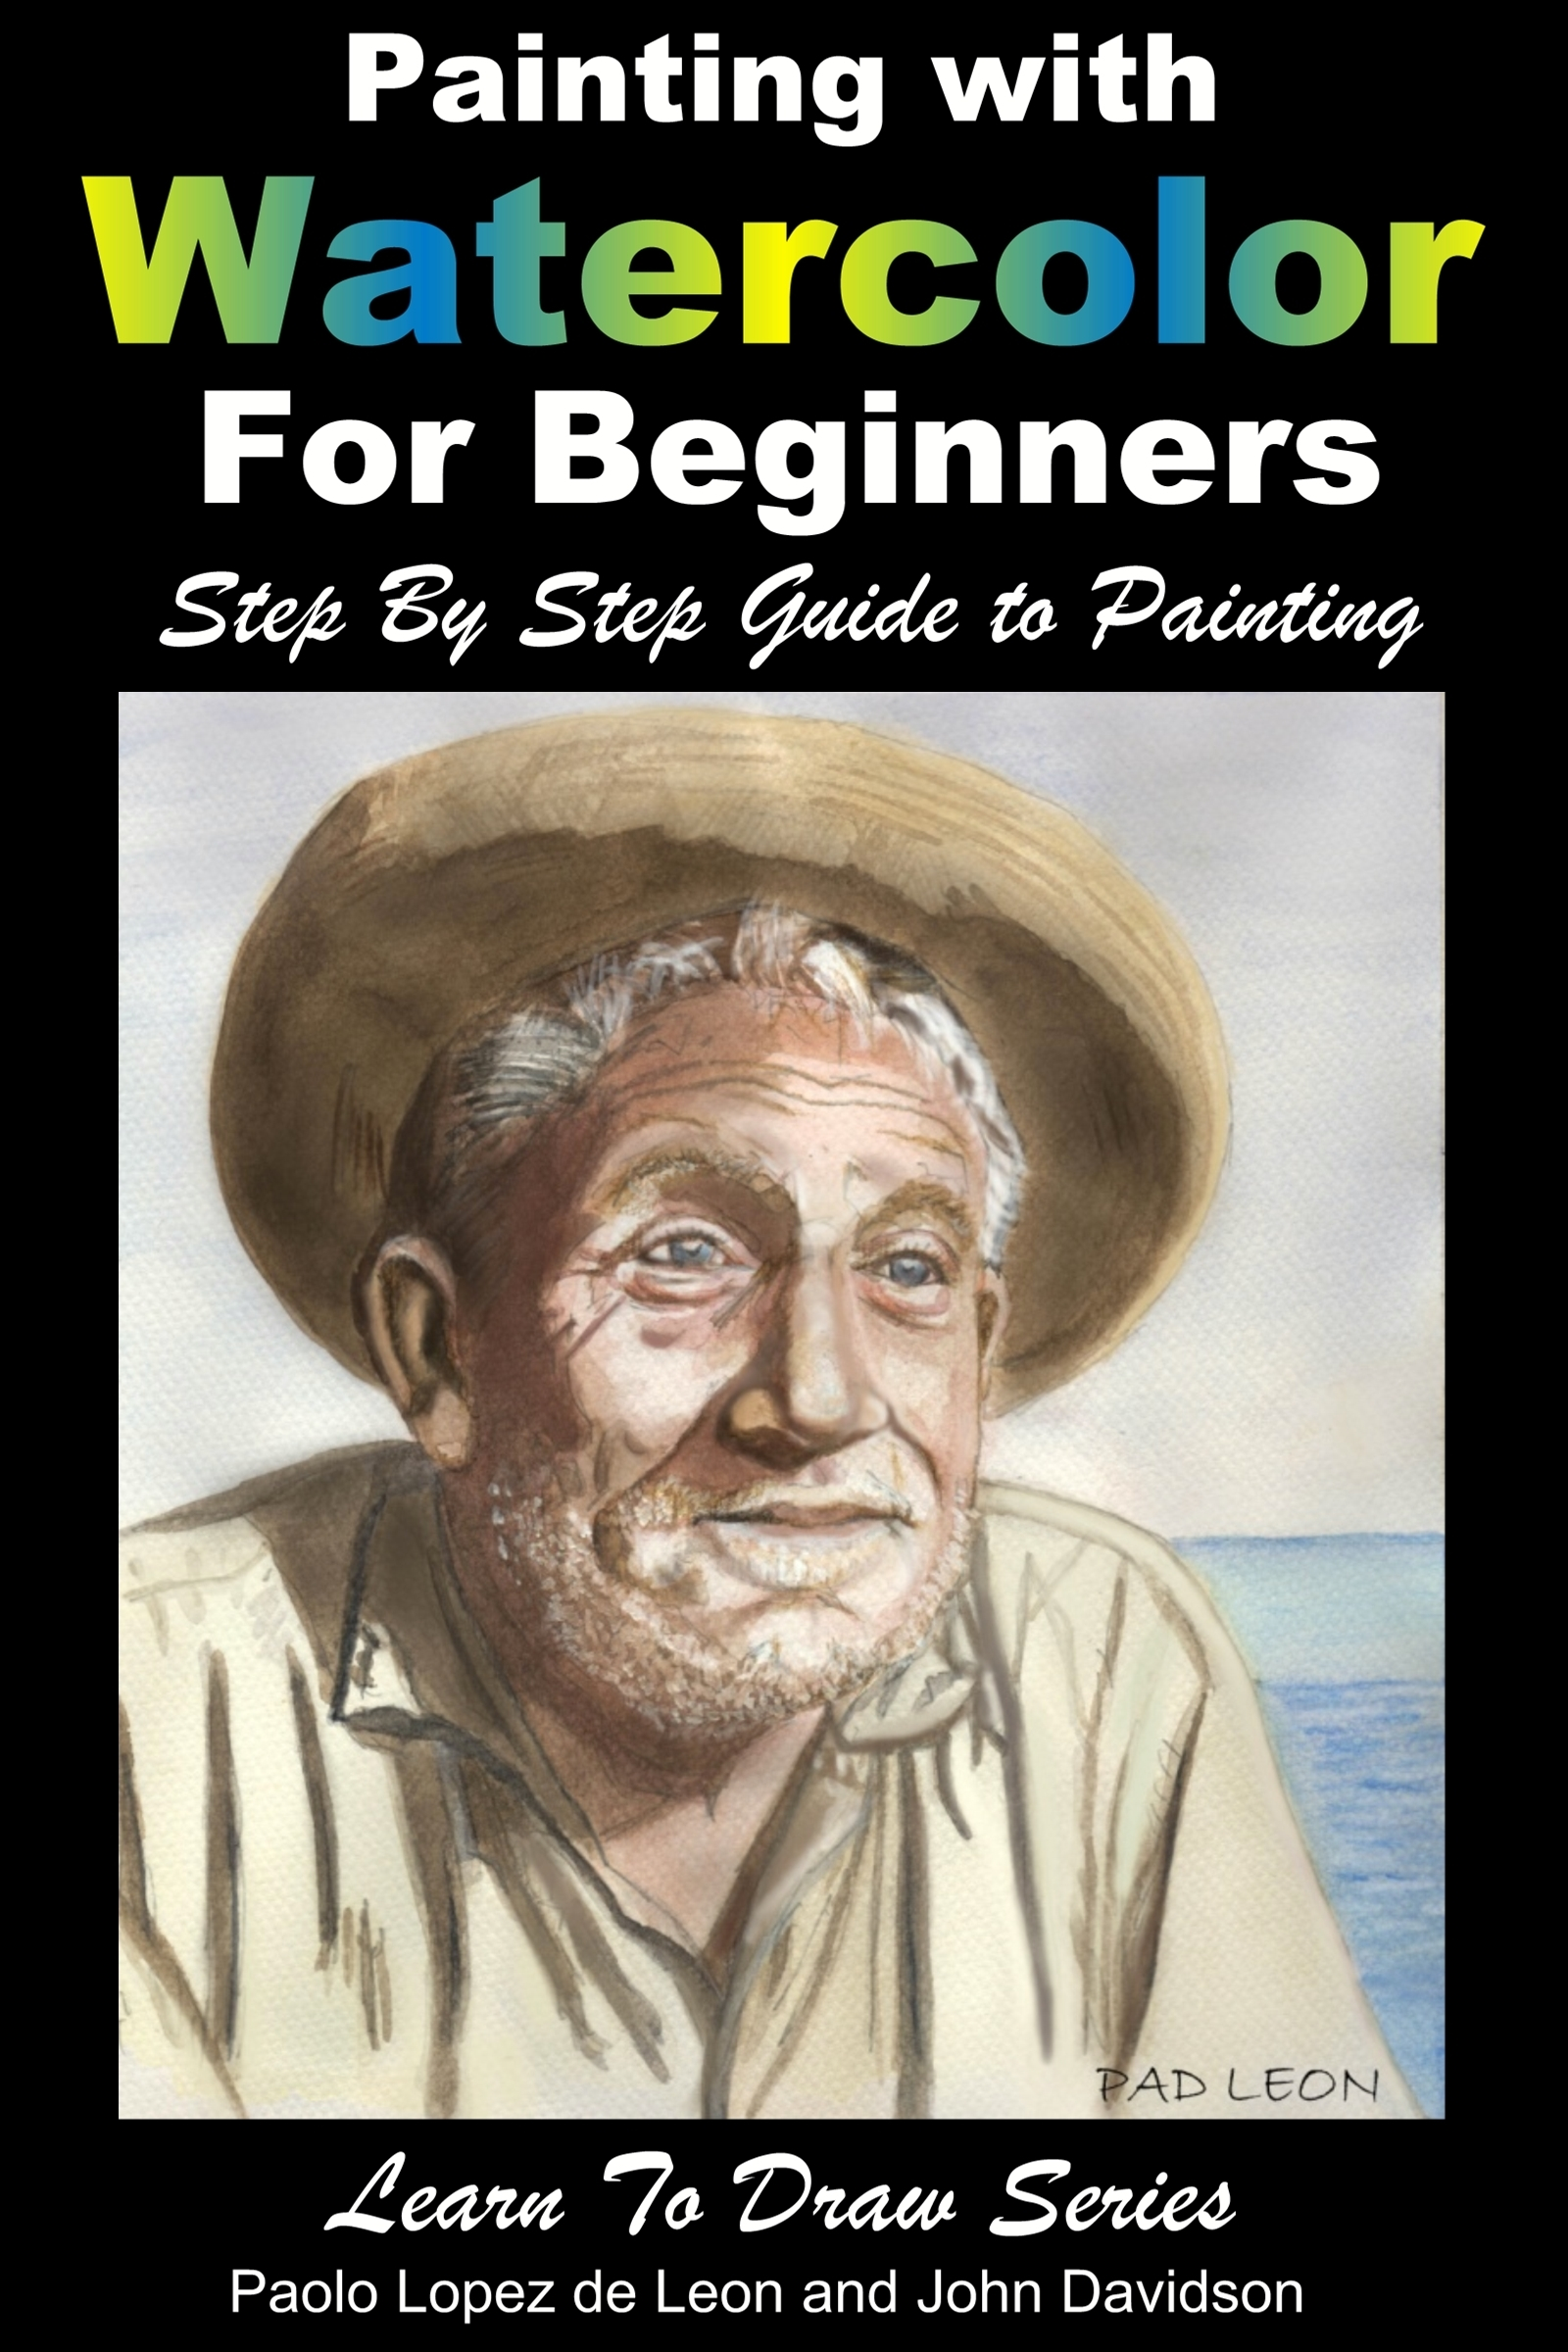 Painting with Watercolor For Beginners: Step By Step Guide to Painting Paolo Lopez de Leon